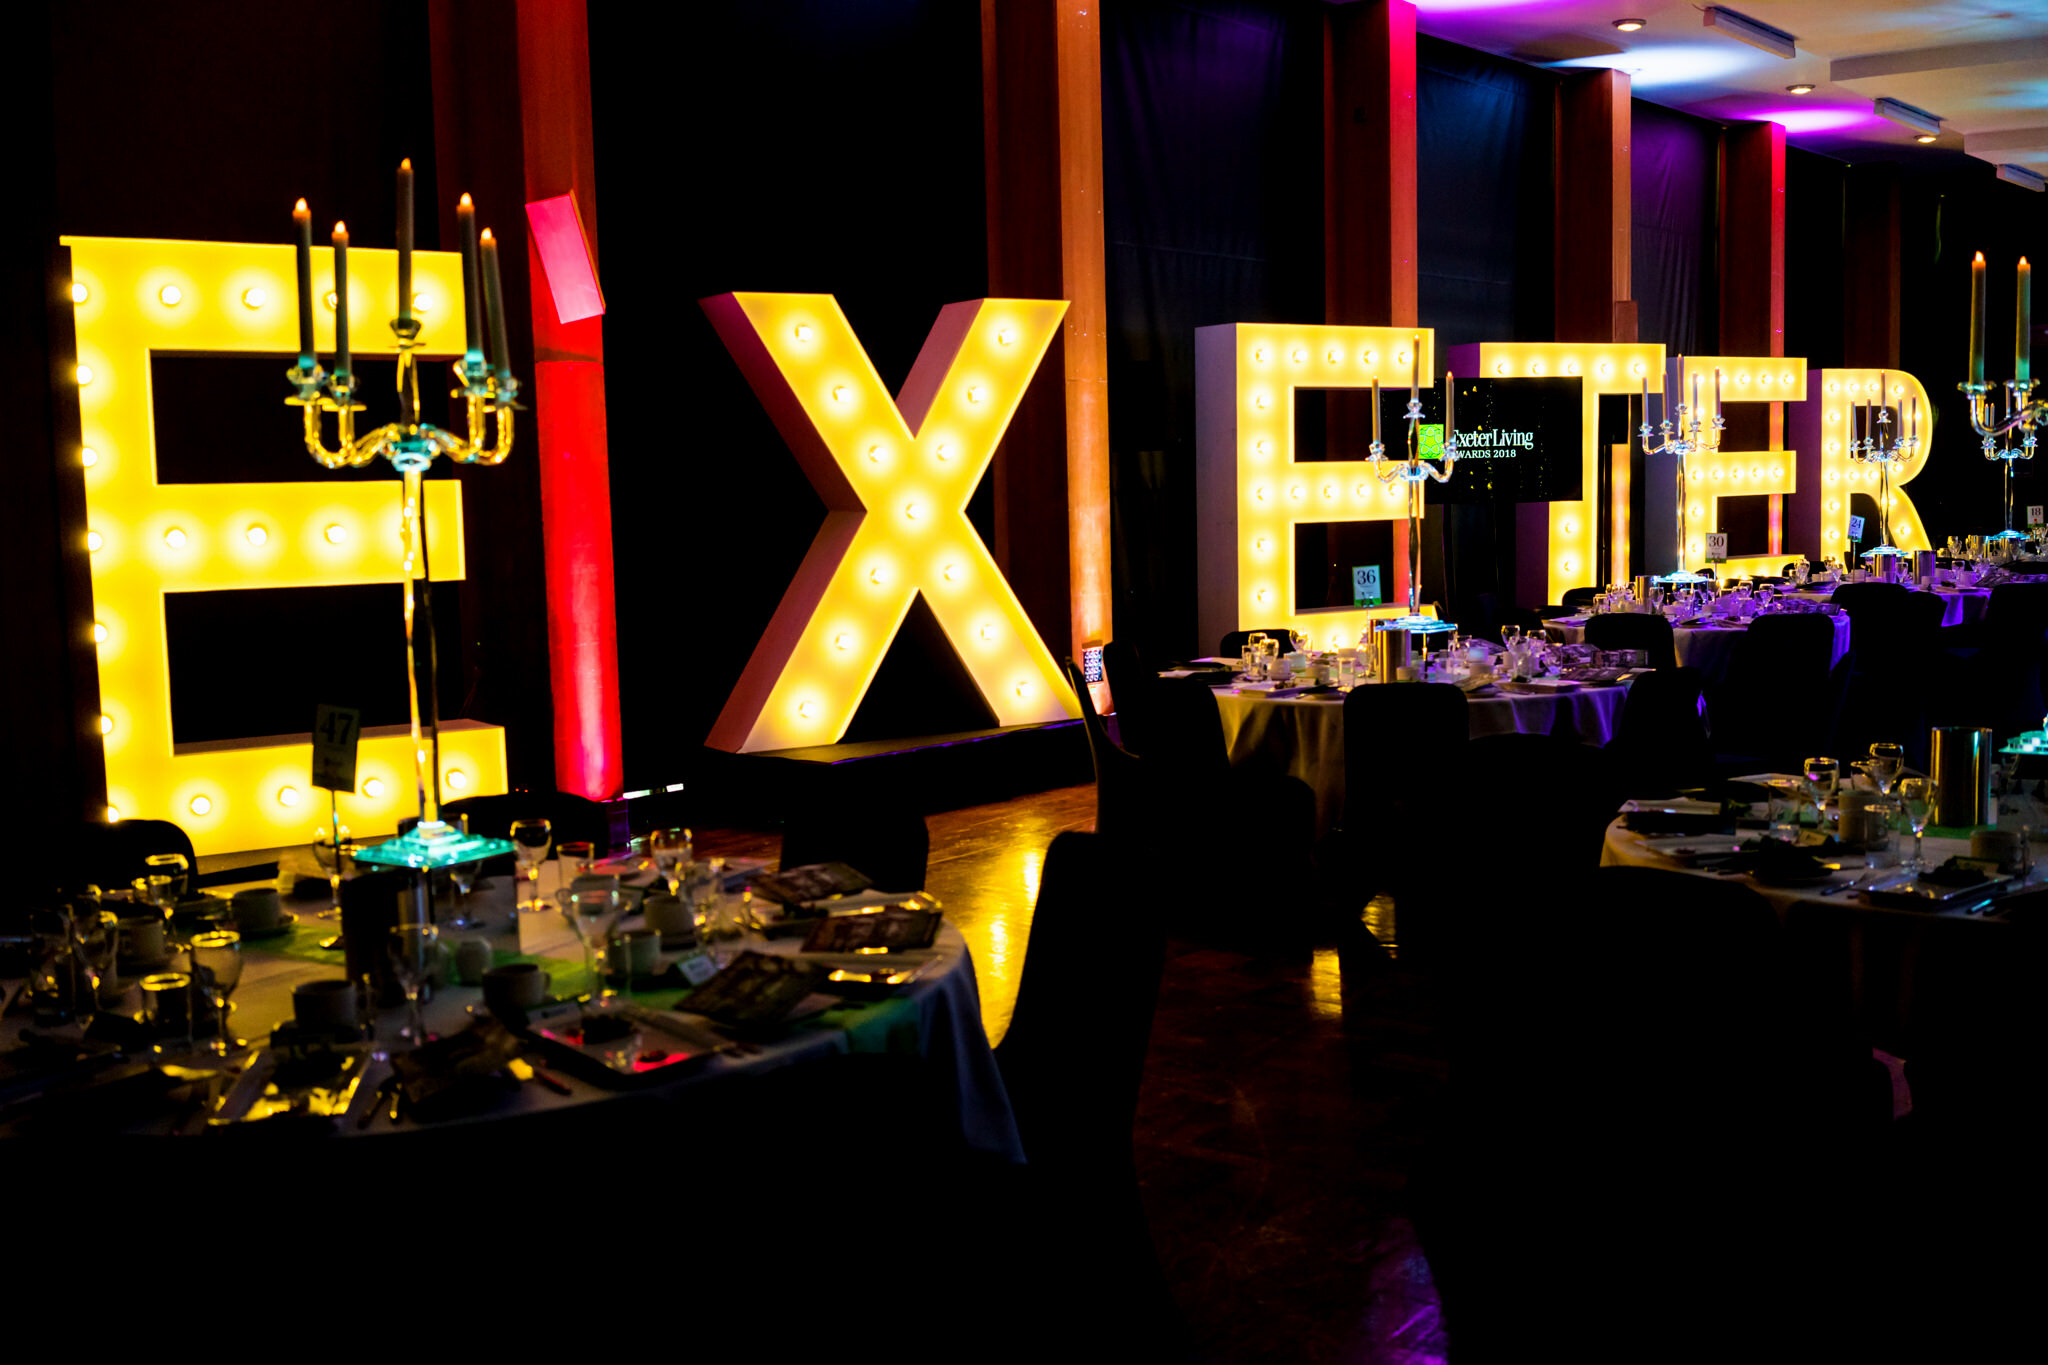 Corporate-events-exeter-devon00050.JPG